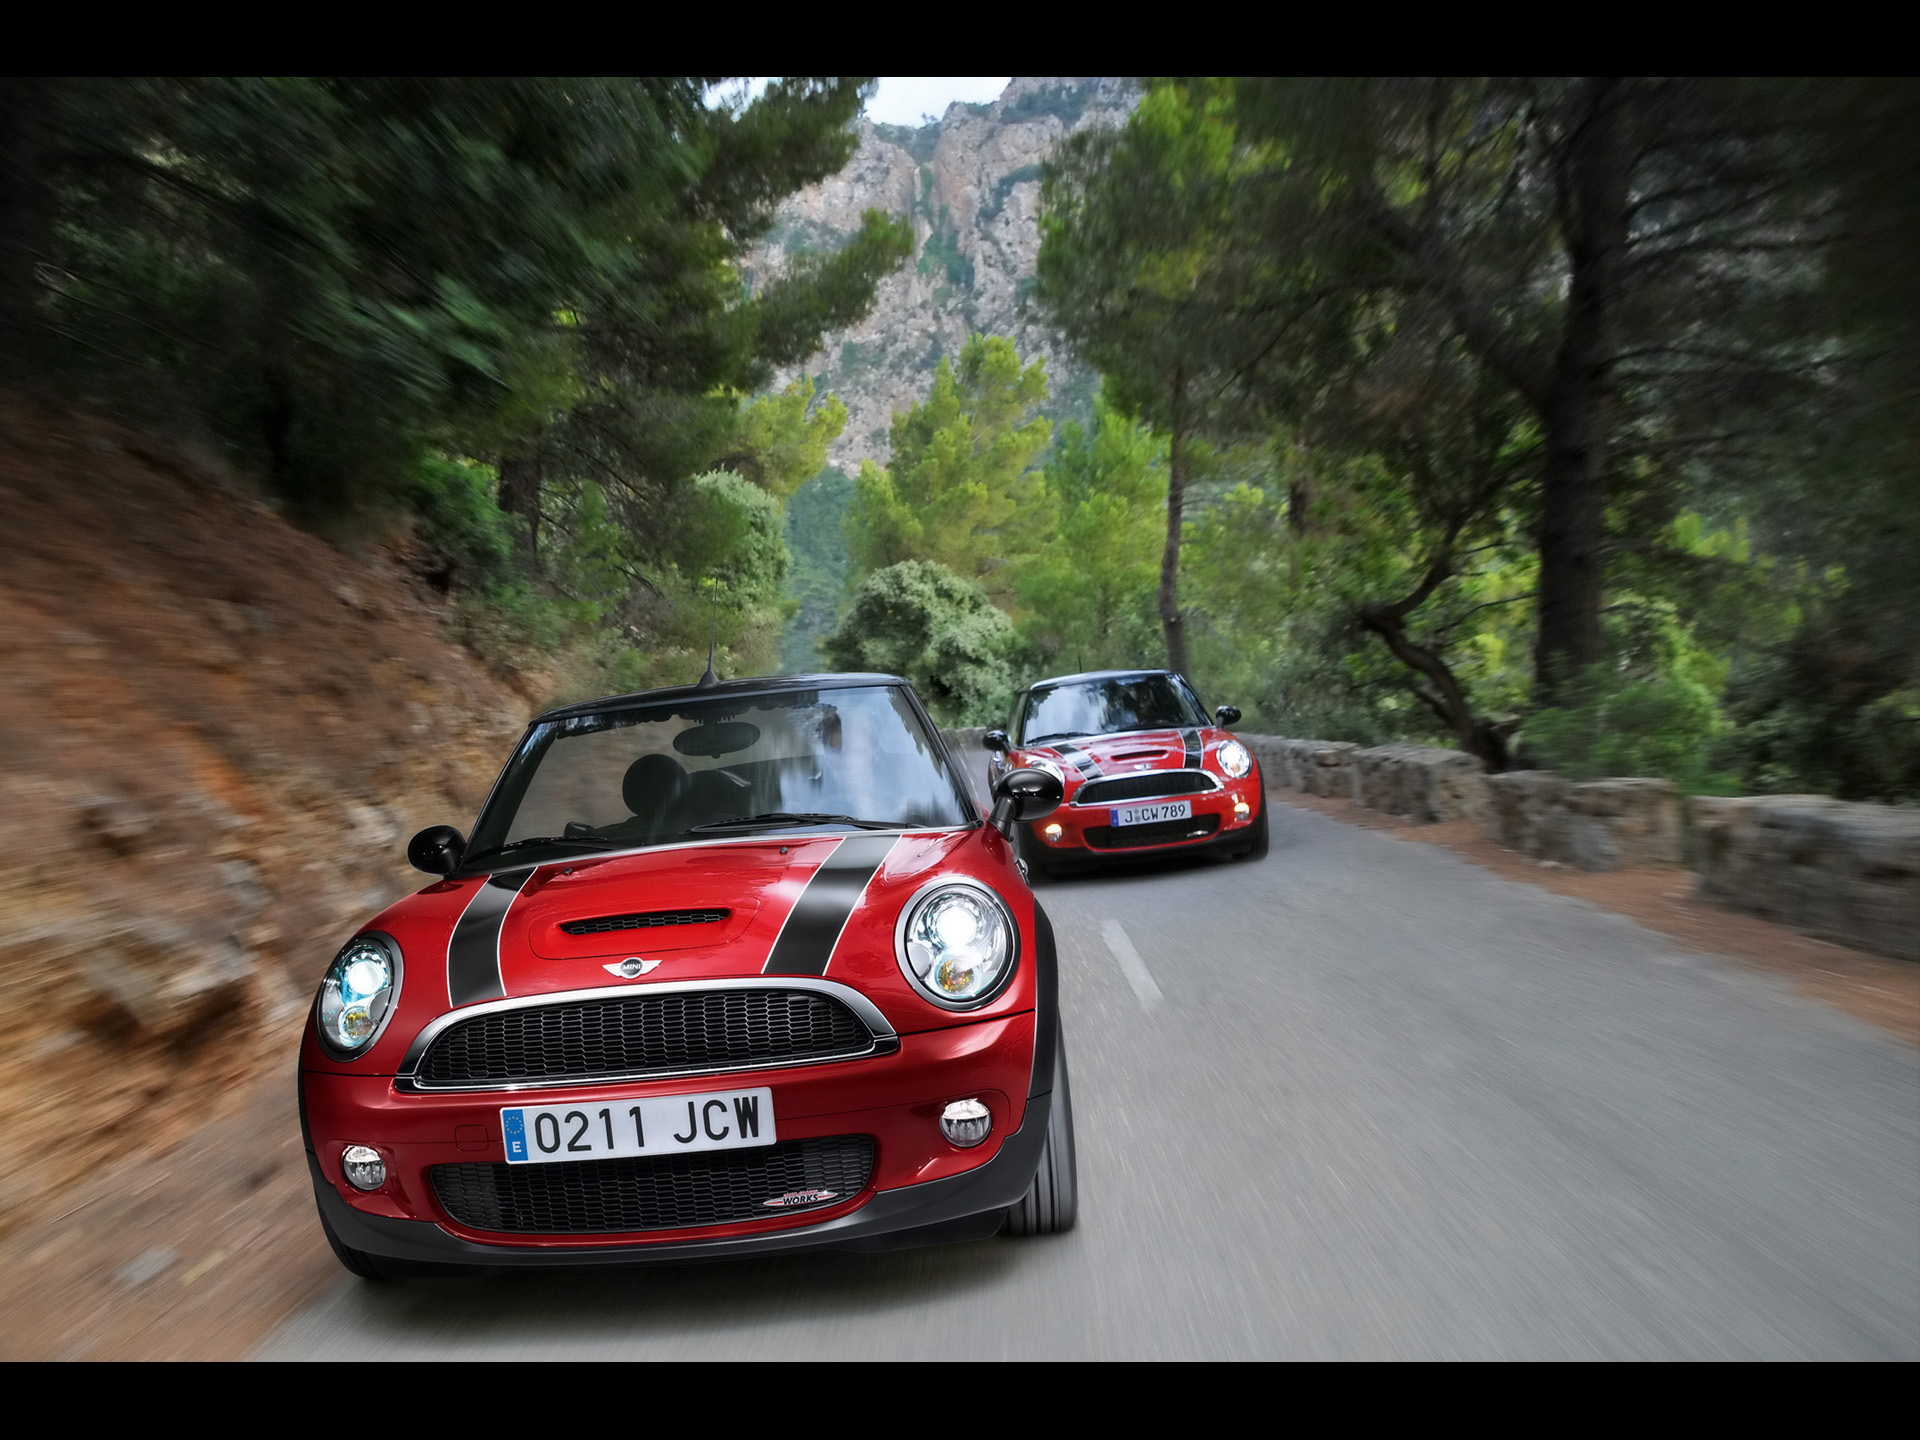 mini cooper jcw pursuit wallpapers 14411 1920x1440